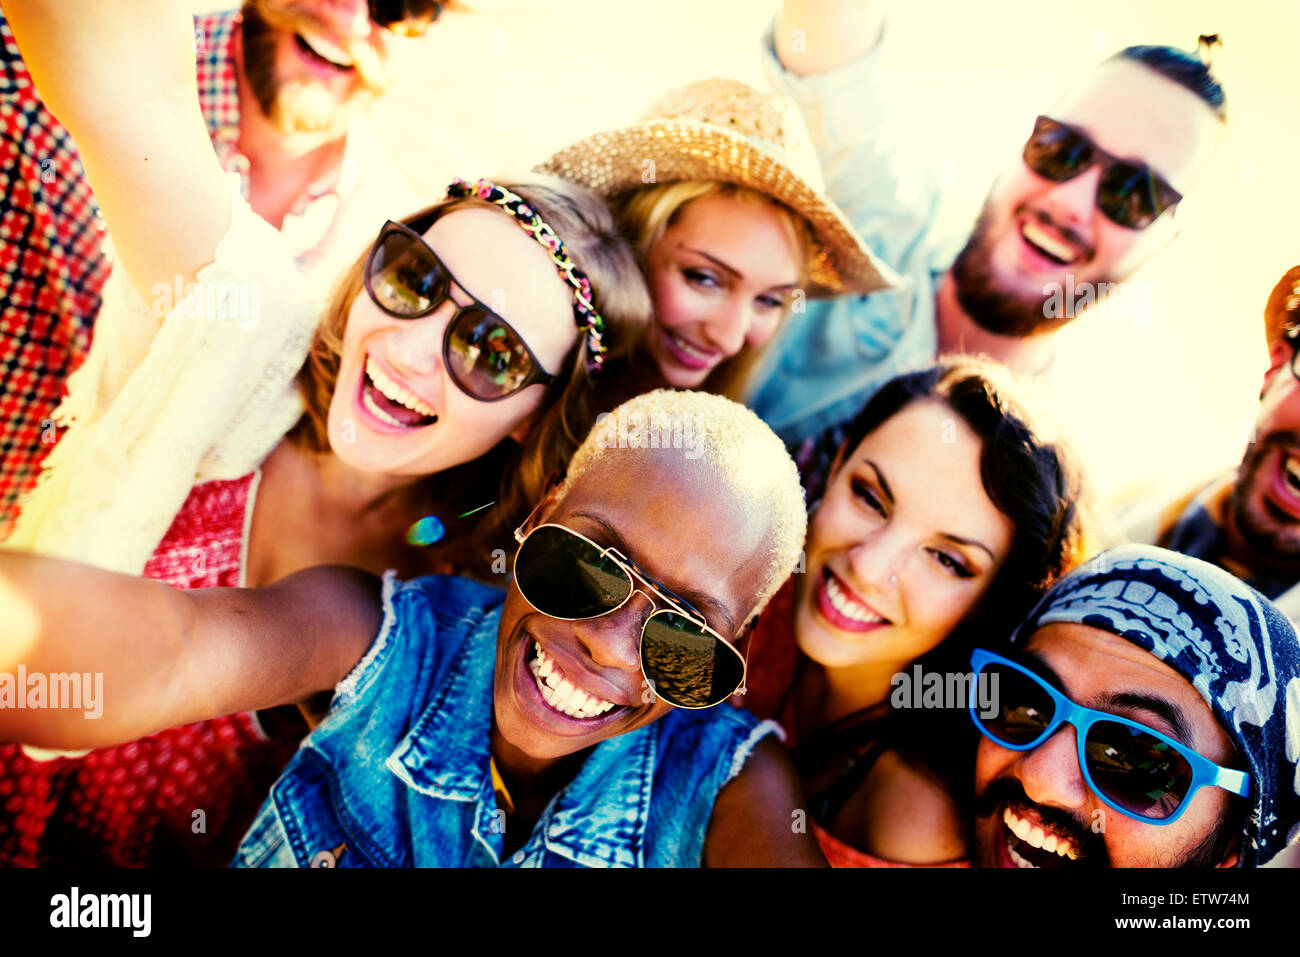 Diverses personnes Plage été amis Fun Concept Selfies Photo Stock